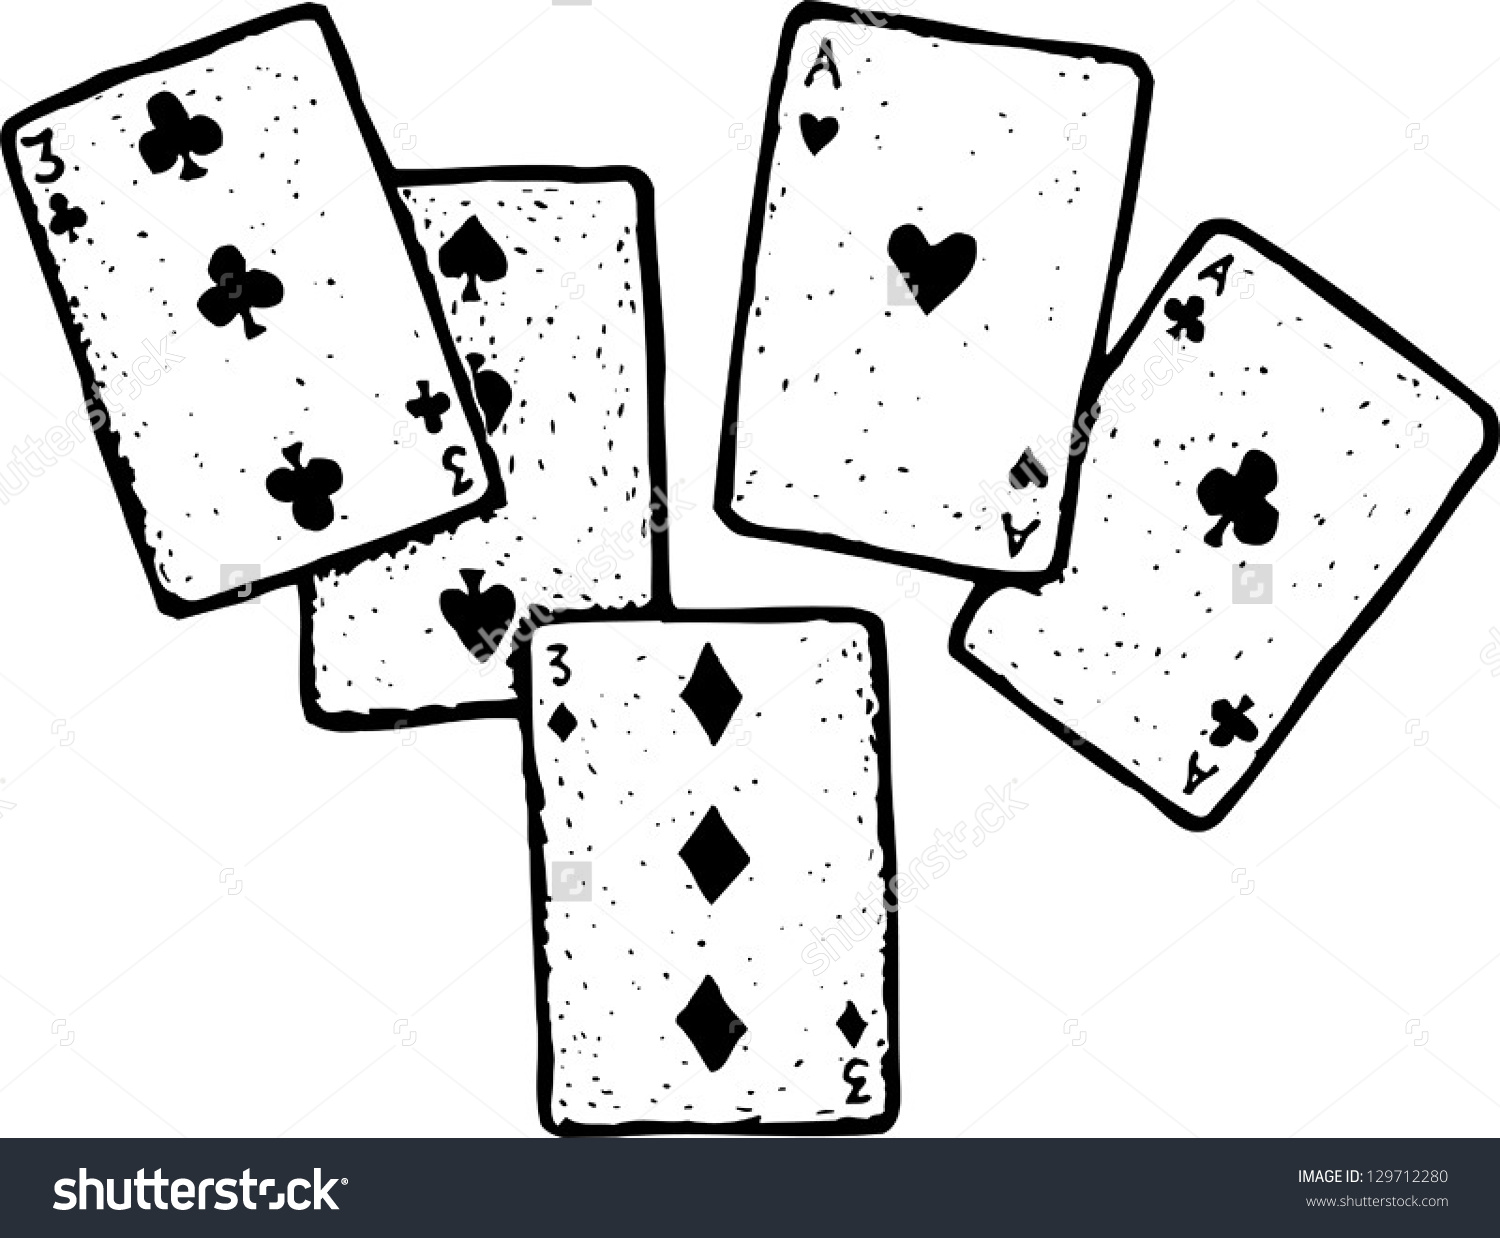 Vector Illustration Full House Poker Hand Stock Vector 129712280.